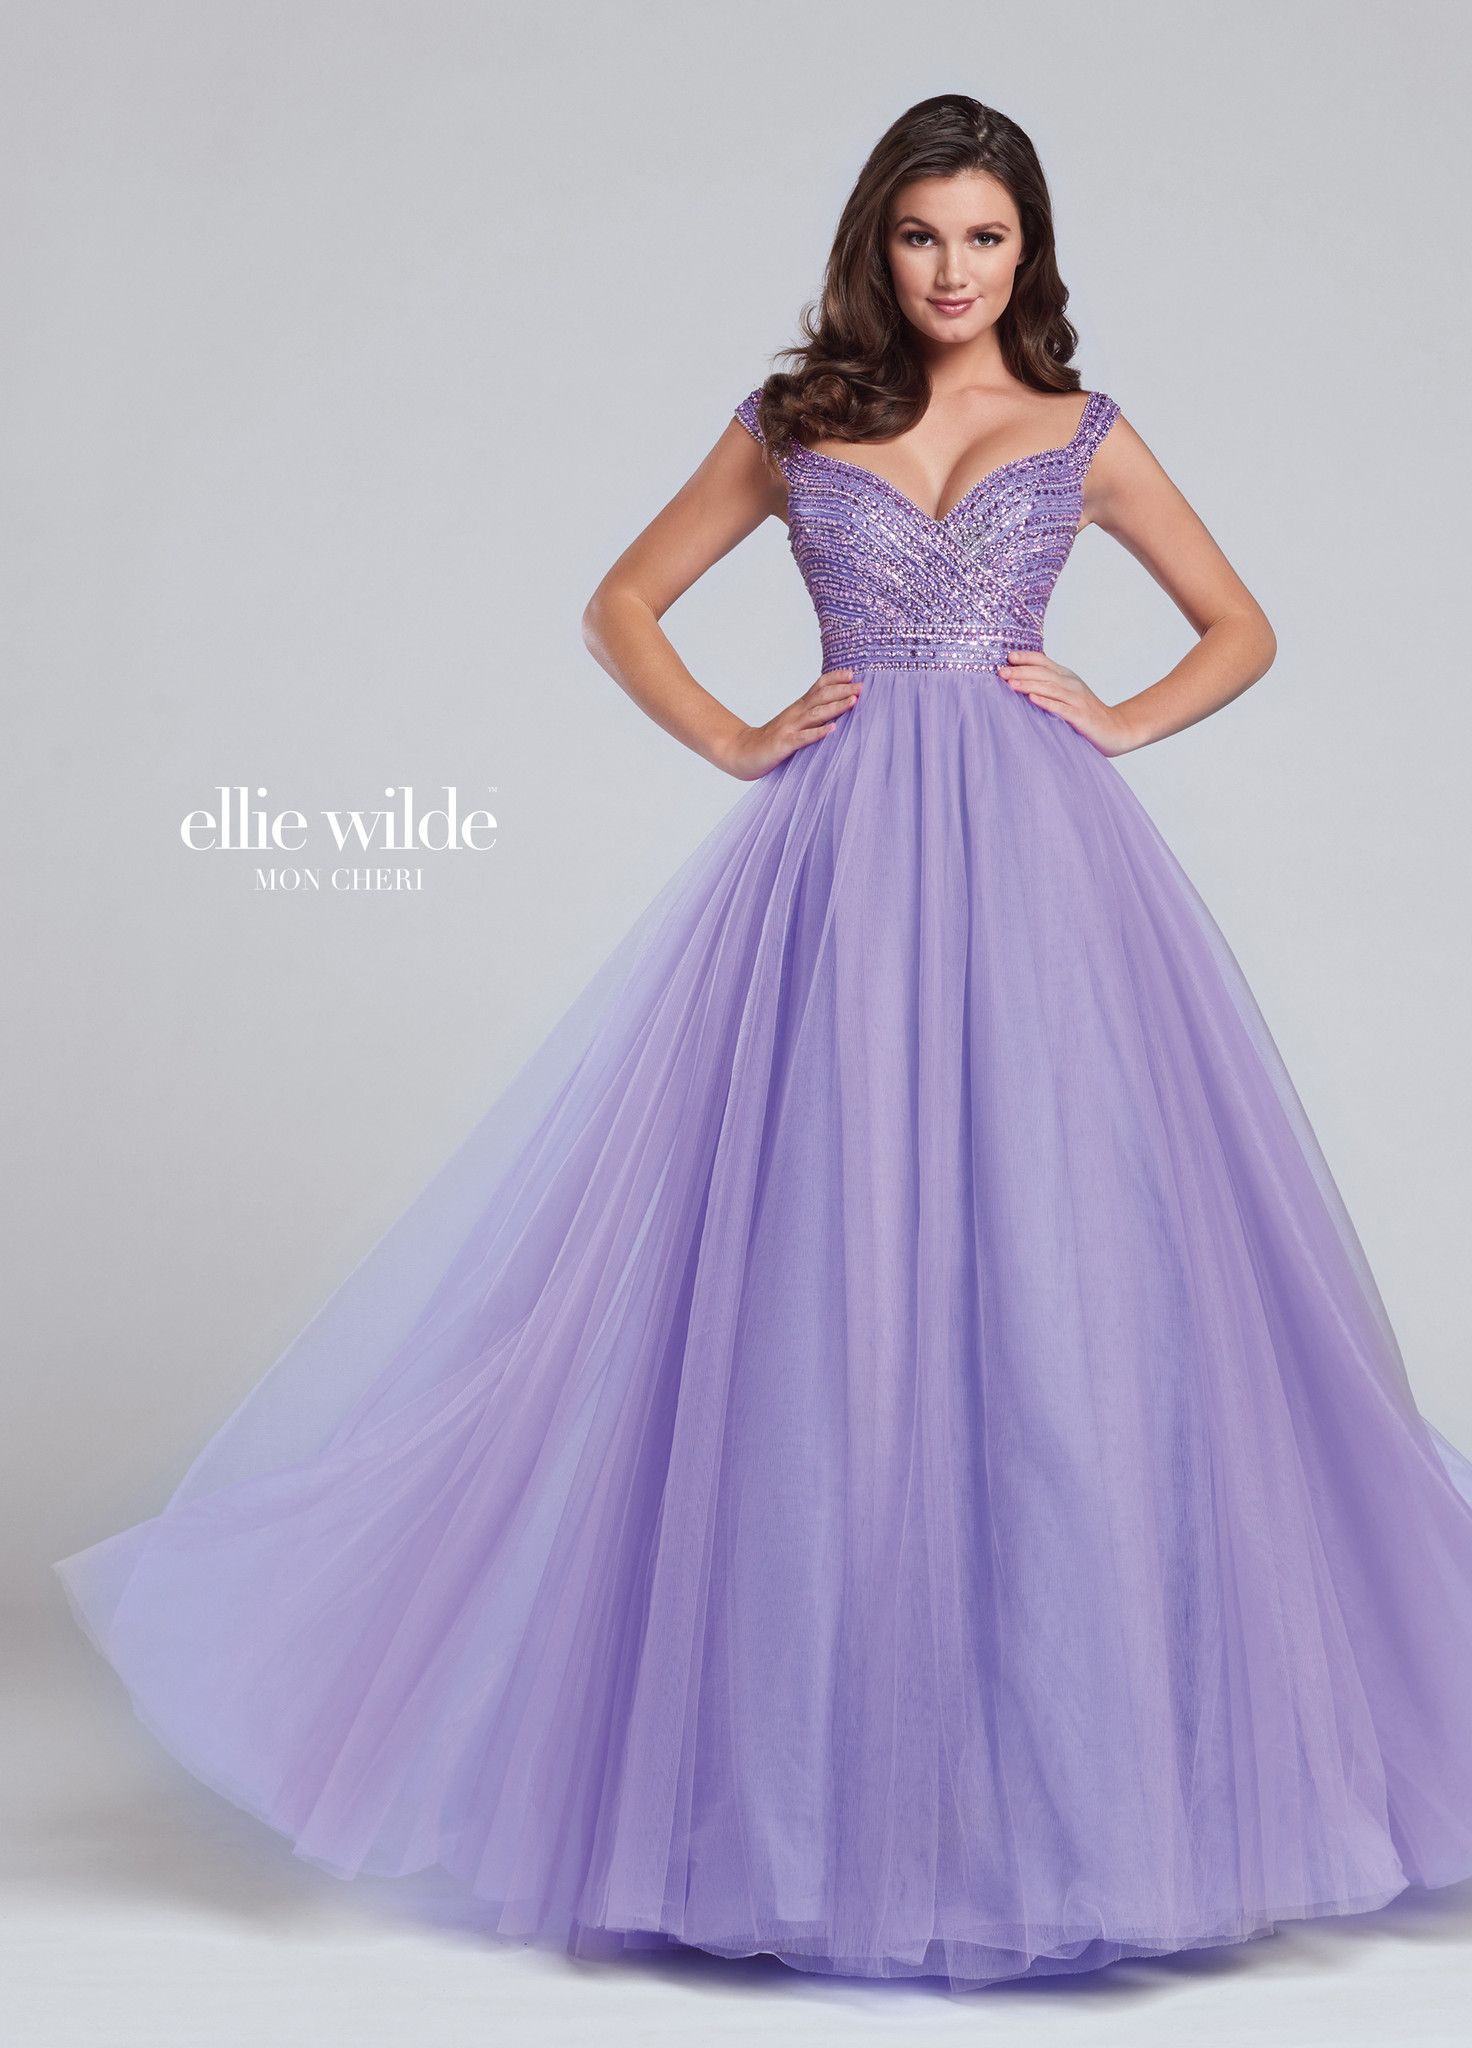 f1d81f0539 Now that s a fairy tale ball gown. Layers of frothy lavender tulle create a  dramatic ball gown skirt perfect for princess spins. All bejeweled lavender  bust ...